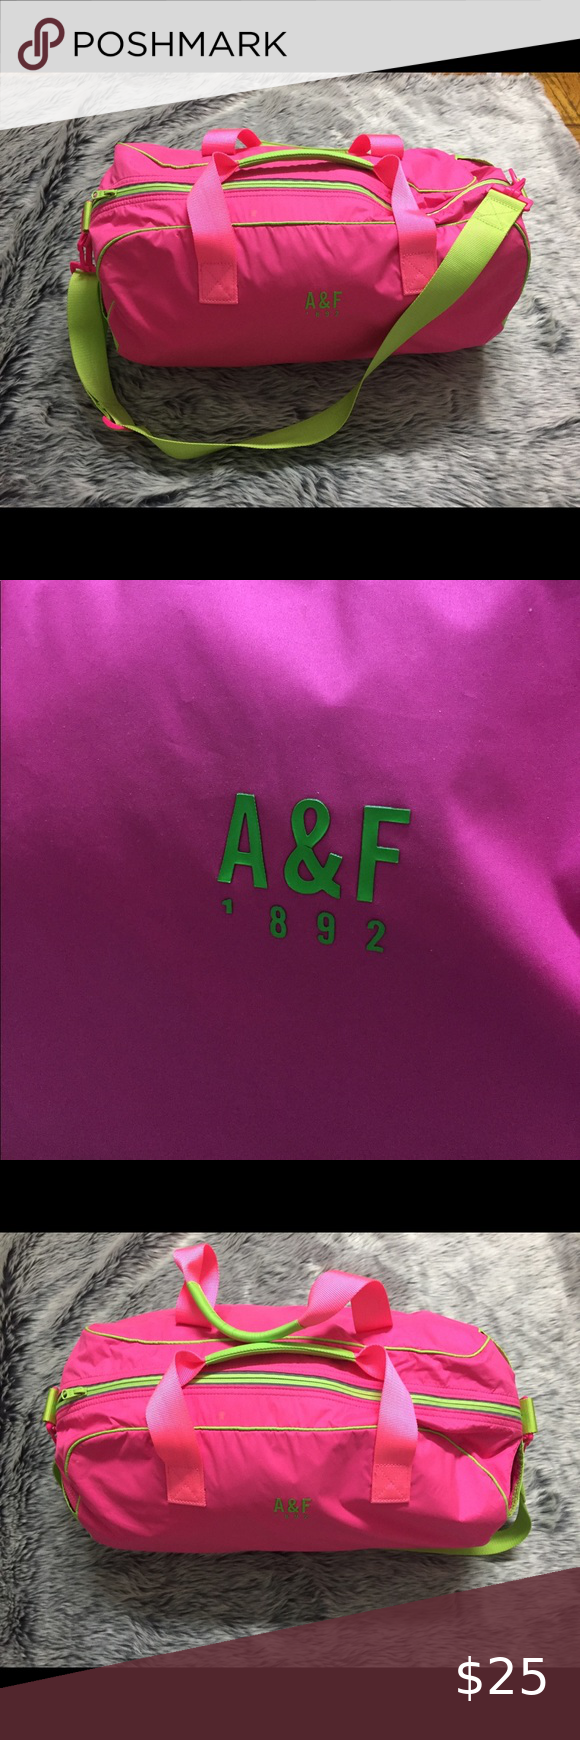 Hot Pink and Neon Green Duffel Bag Pre-owned hot pink and neon green duffel bag. Small dirt marks ar